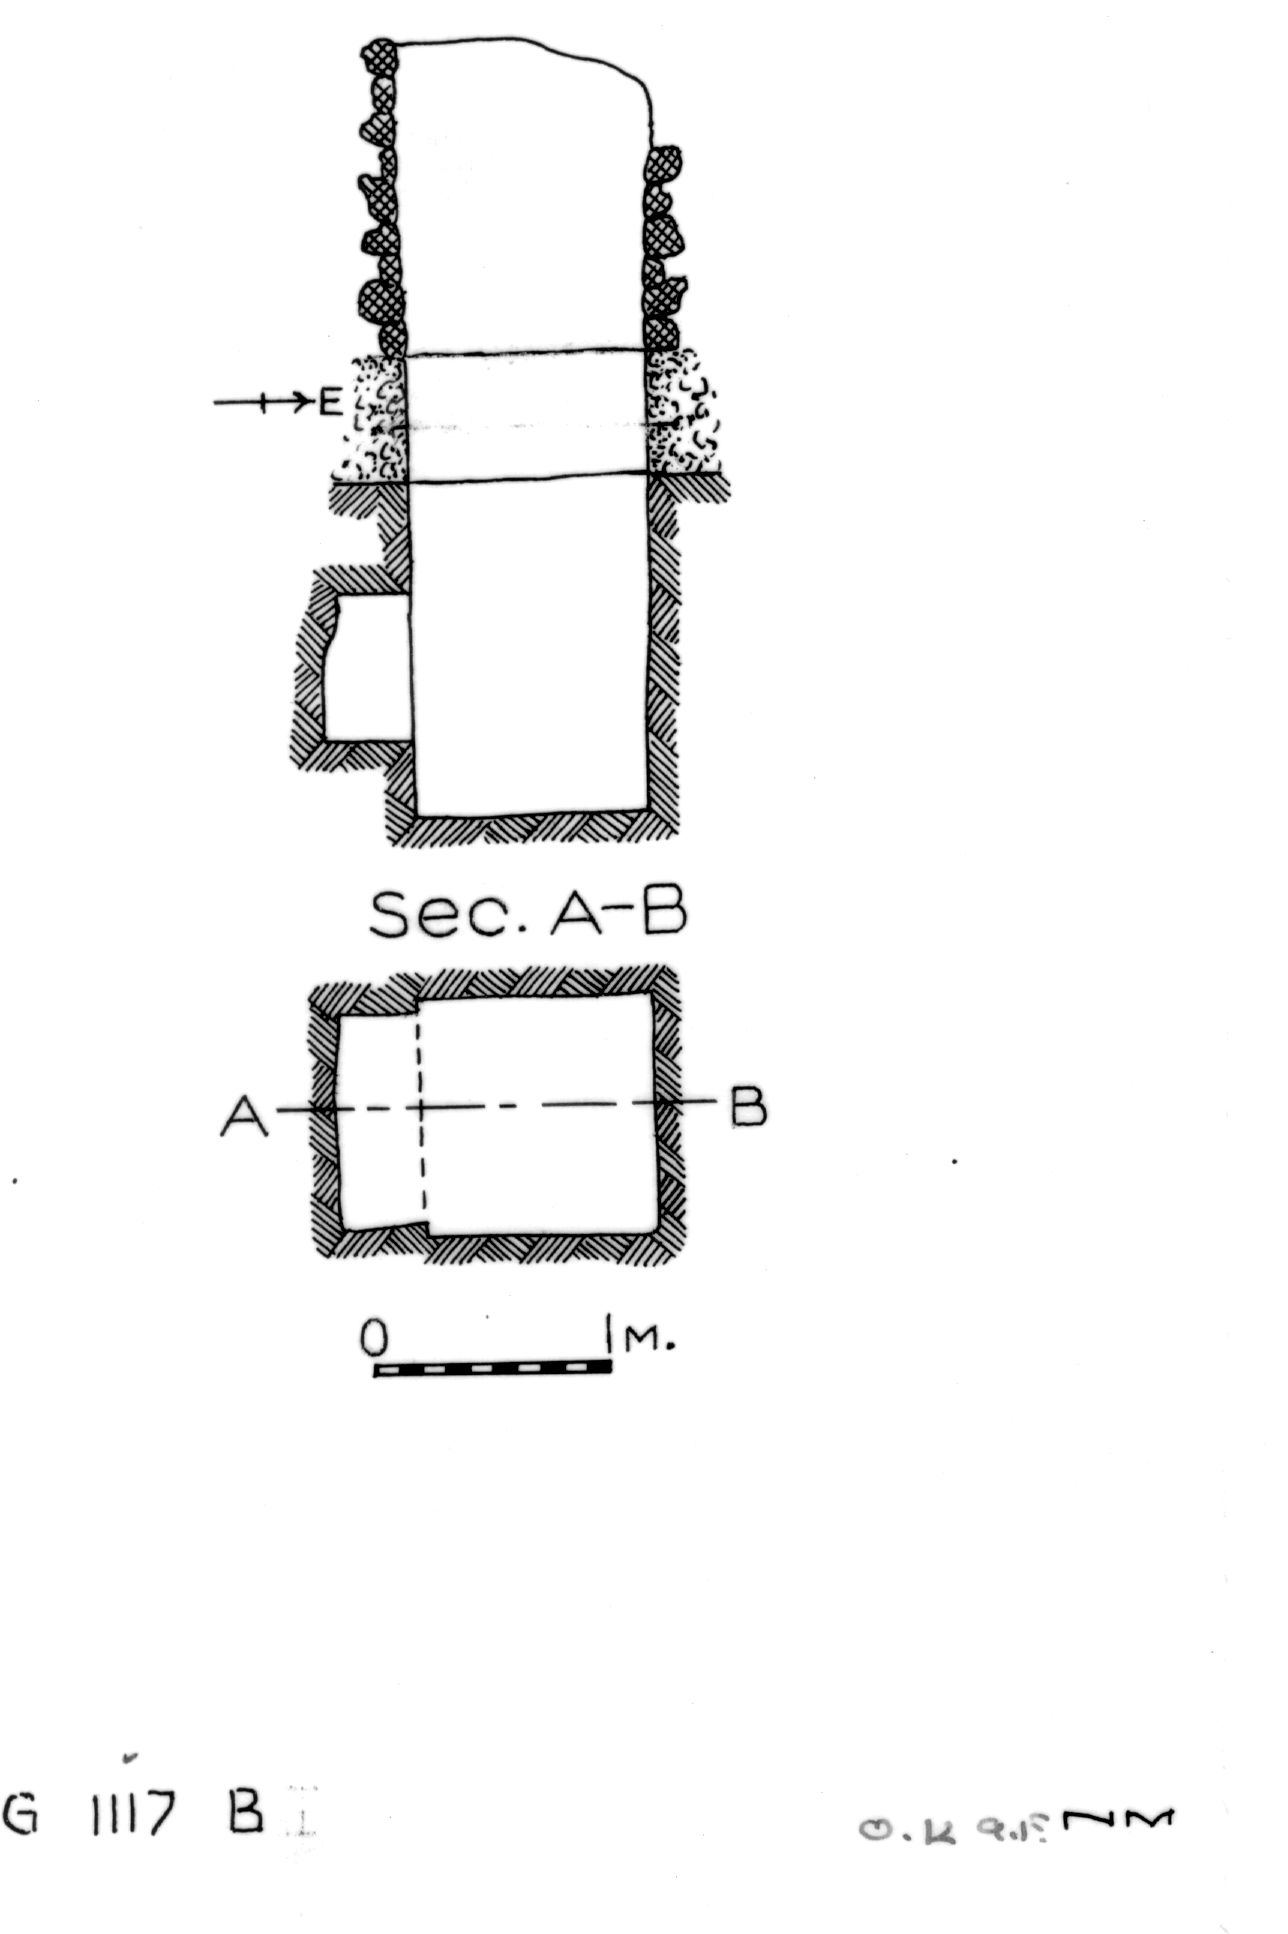 Maps and plans: G 1117, Shaft B